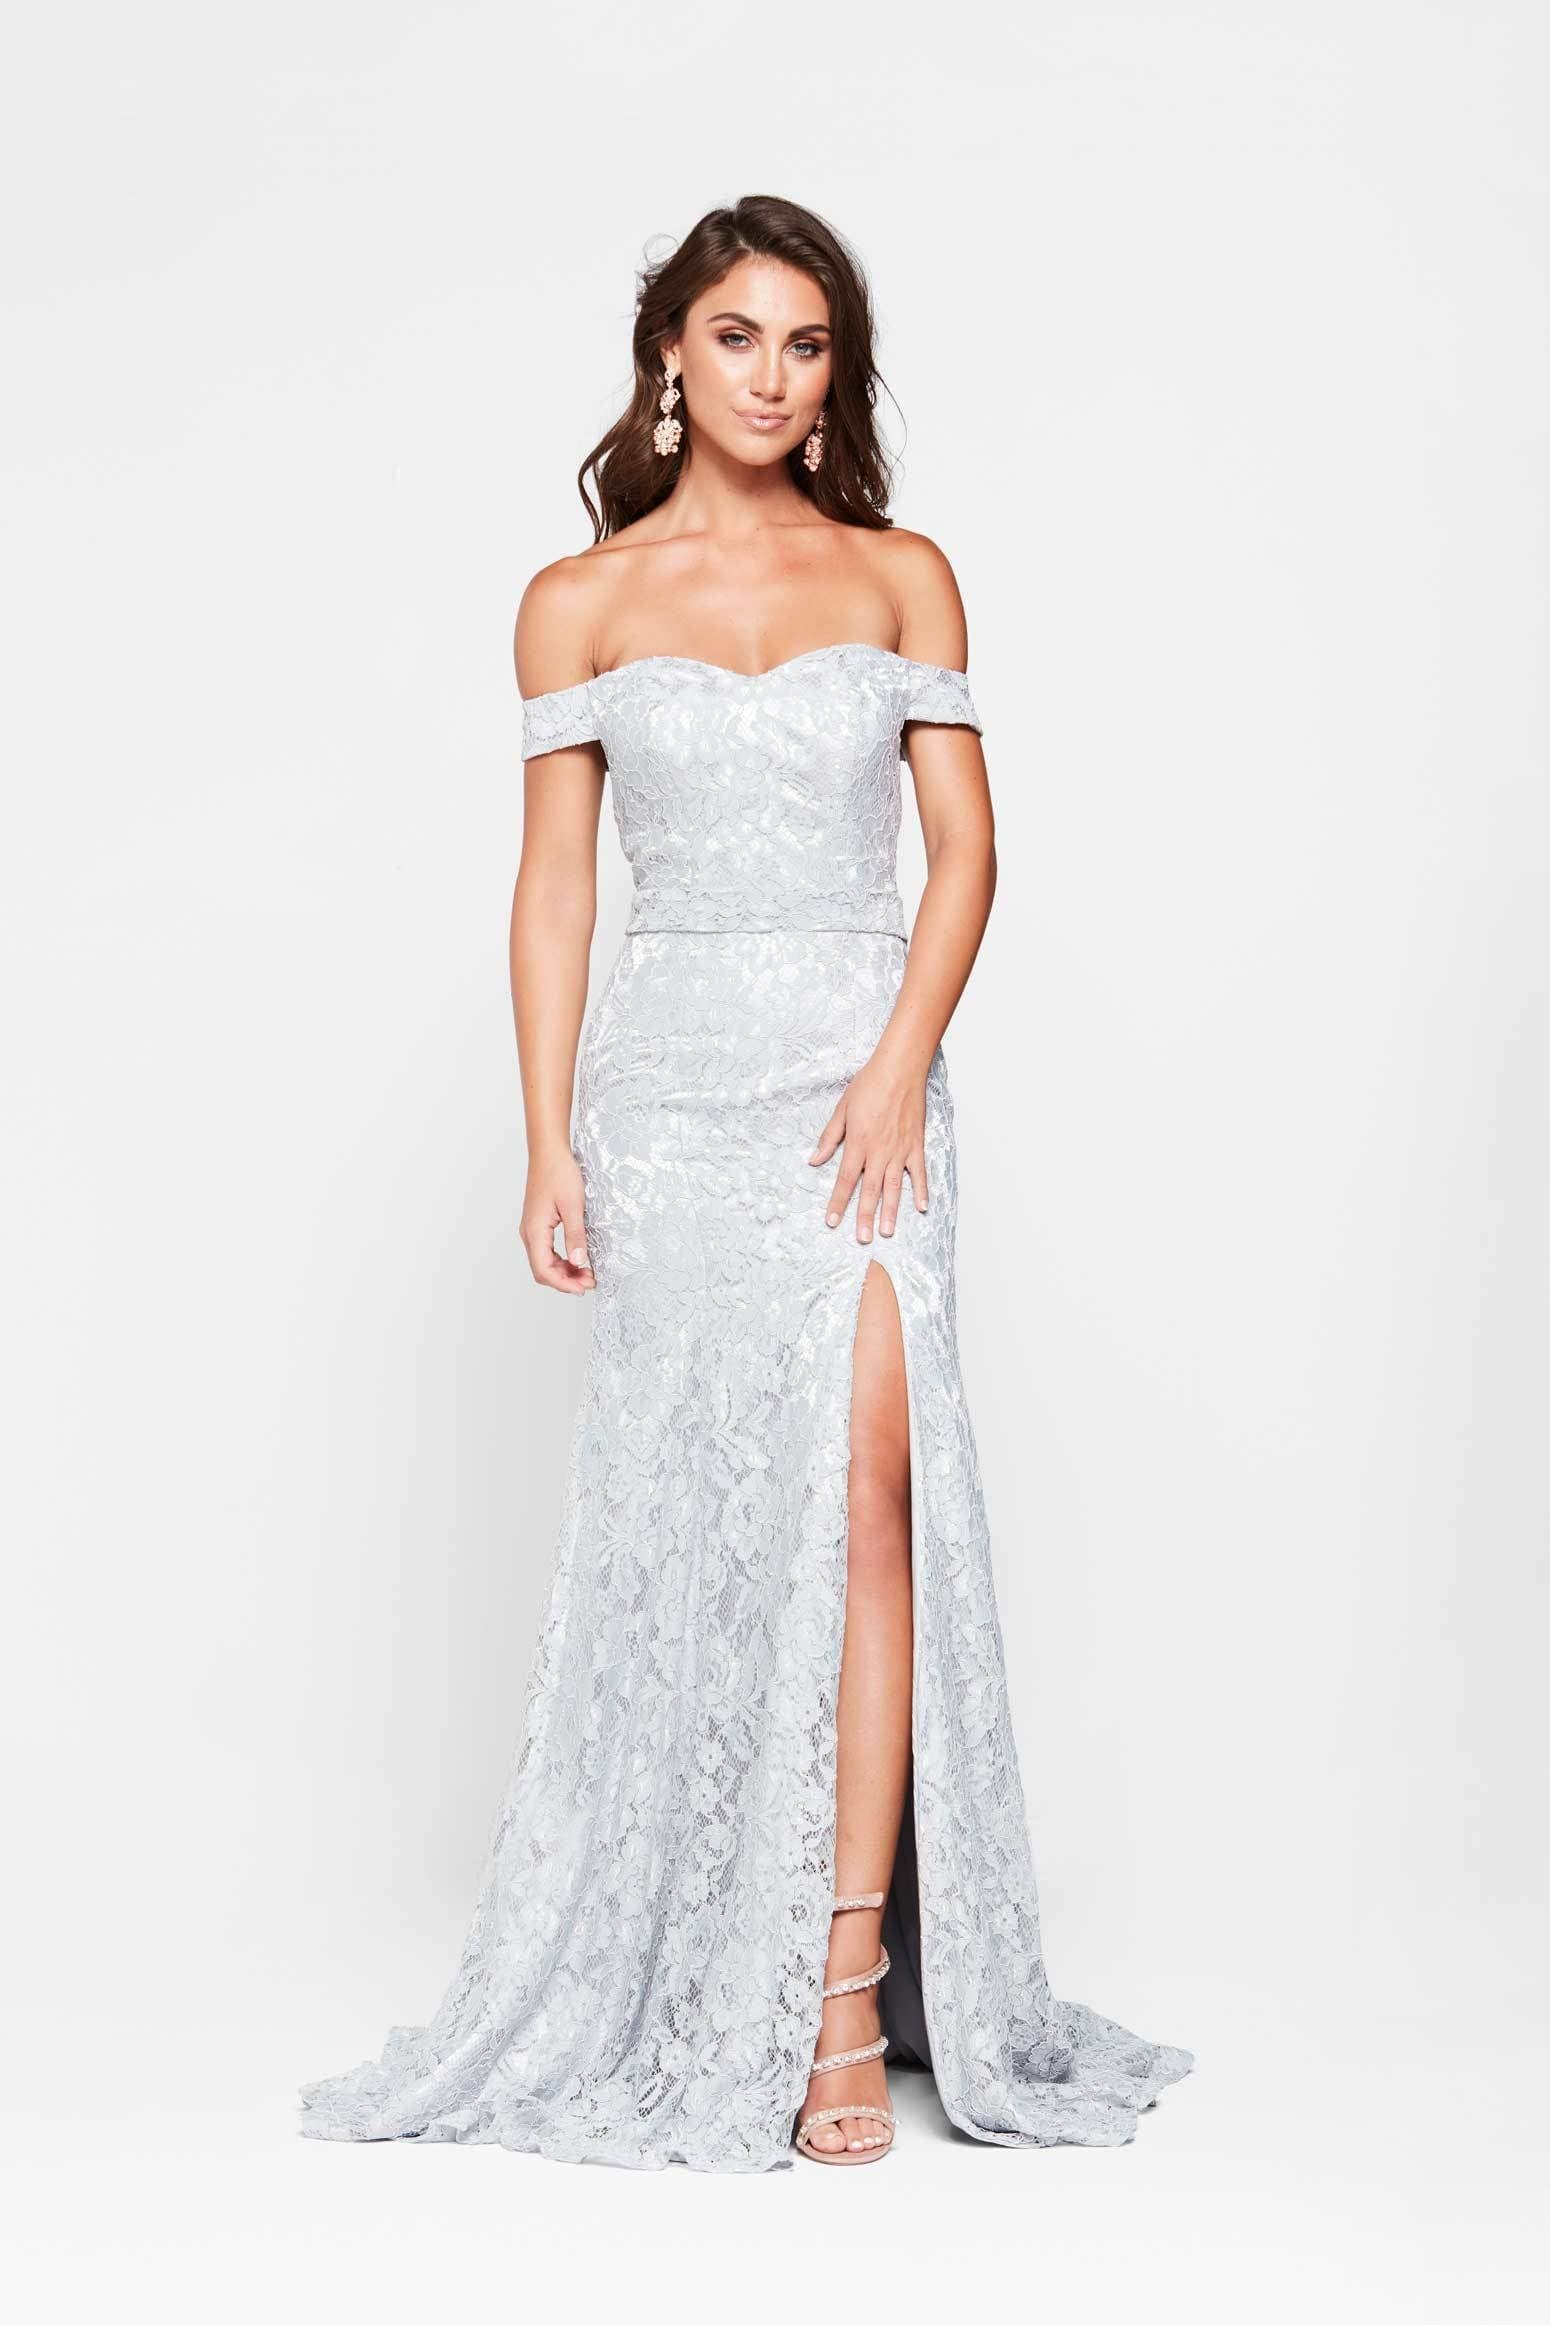 4c5b31d48486 A N Leyla - Silver Off-Shoulder Lace Gown with Side Slit – A N Luxe ...